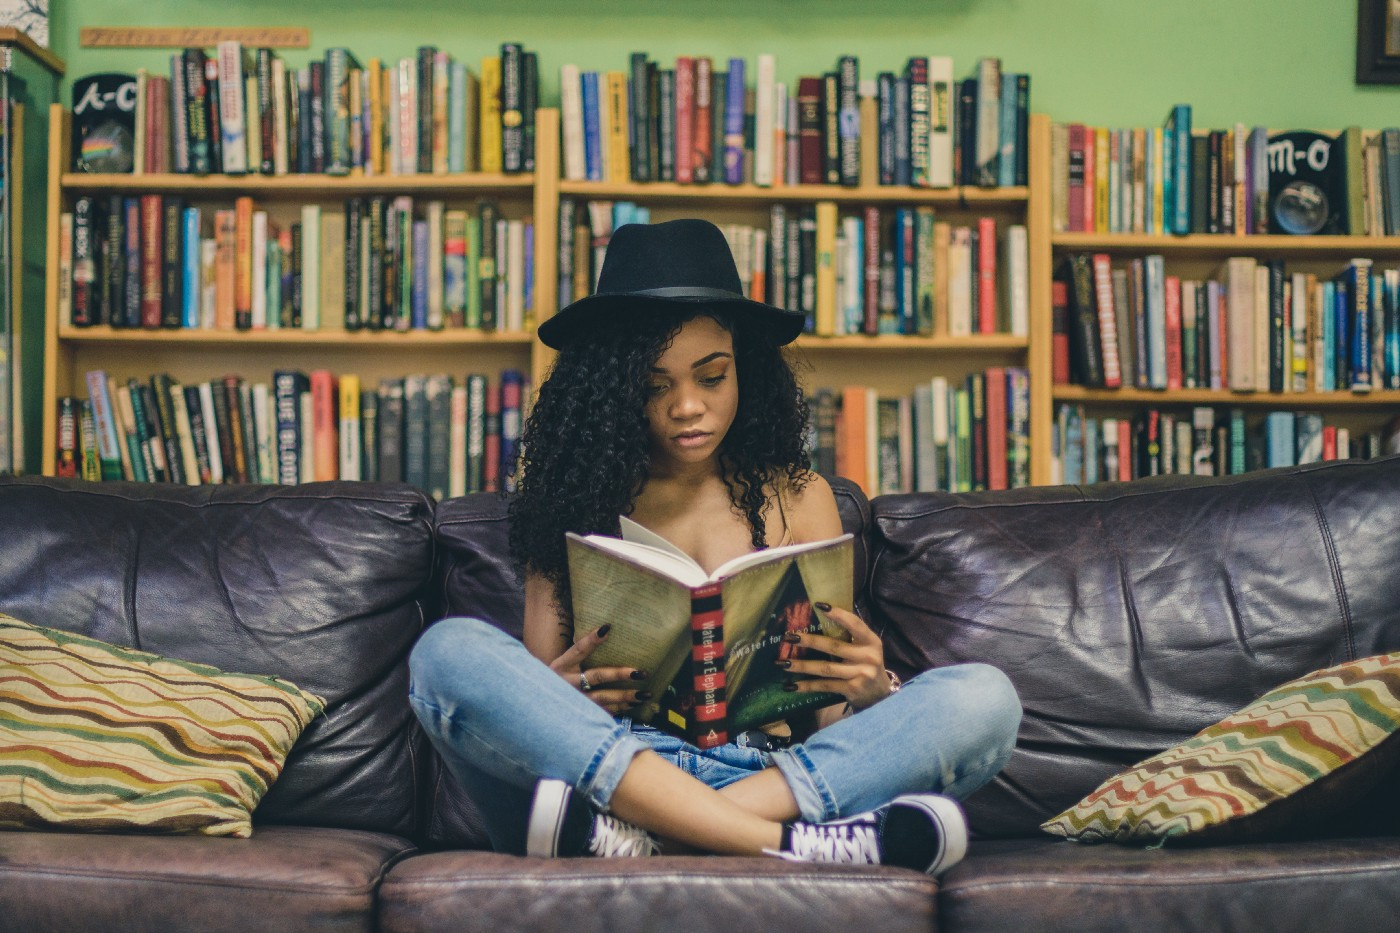 Young girl sitting on couch cross-legged. She's reading a book that is open on her lap.